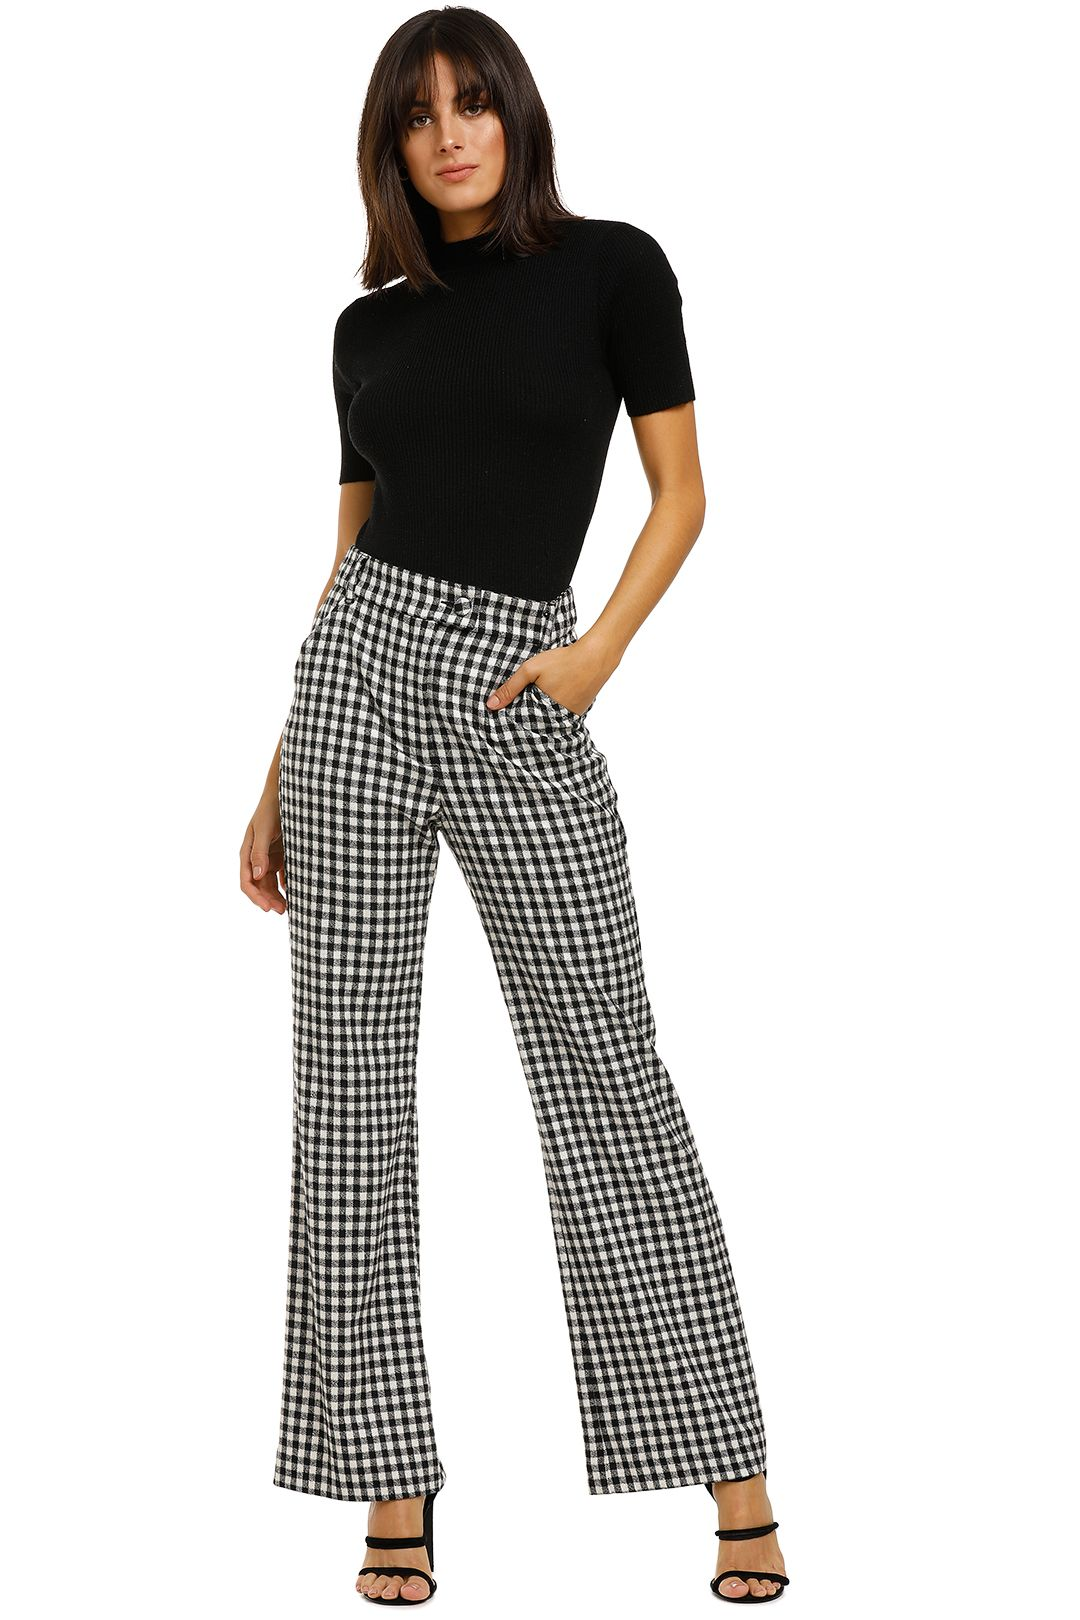 Kate-Sylvester-Josephina-Trousers-Gingham-Front